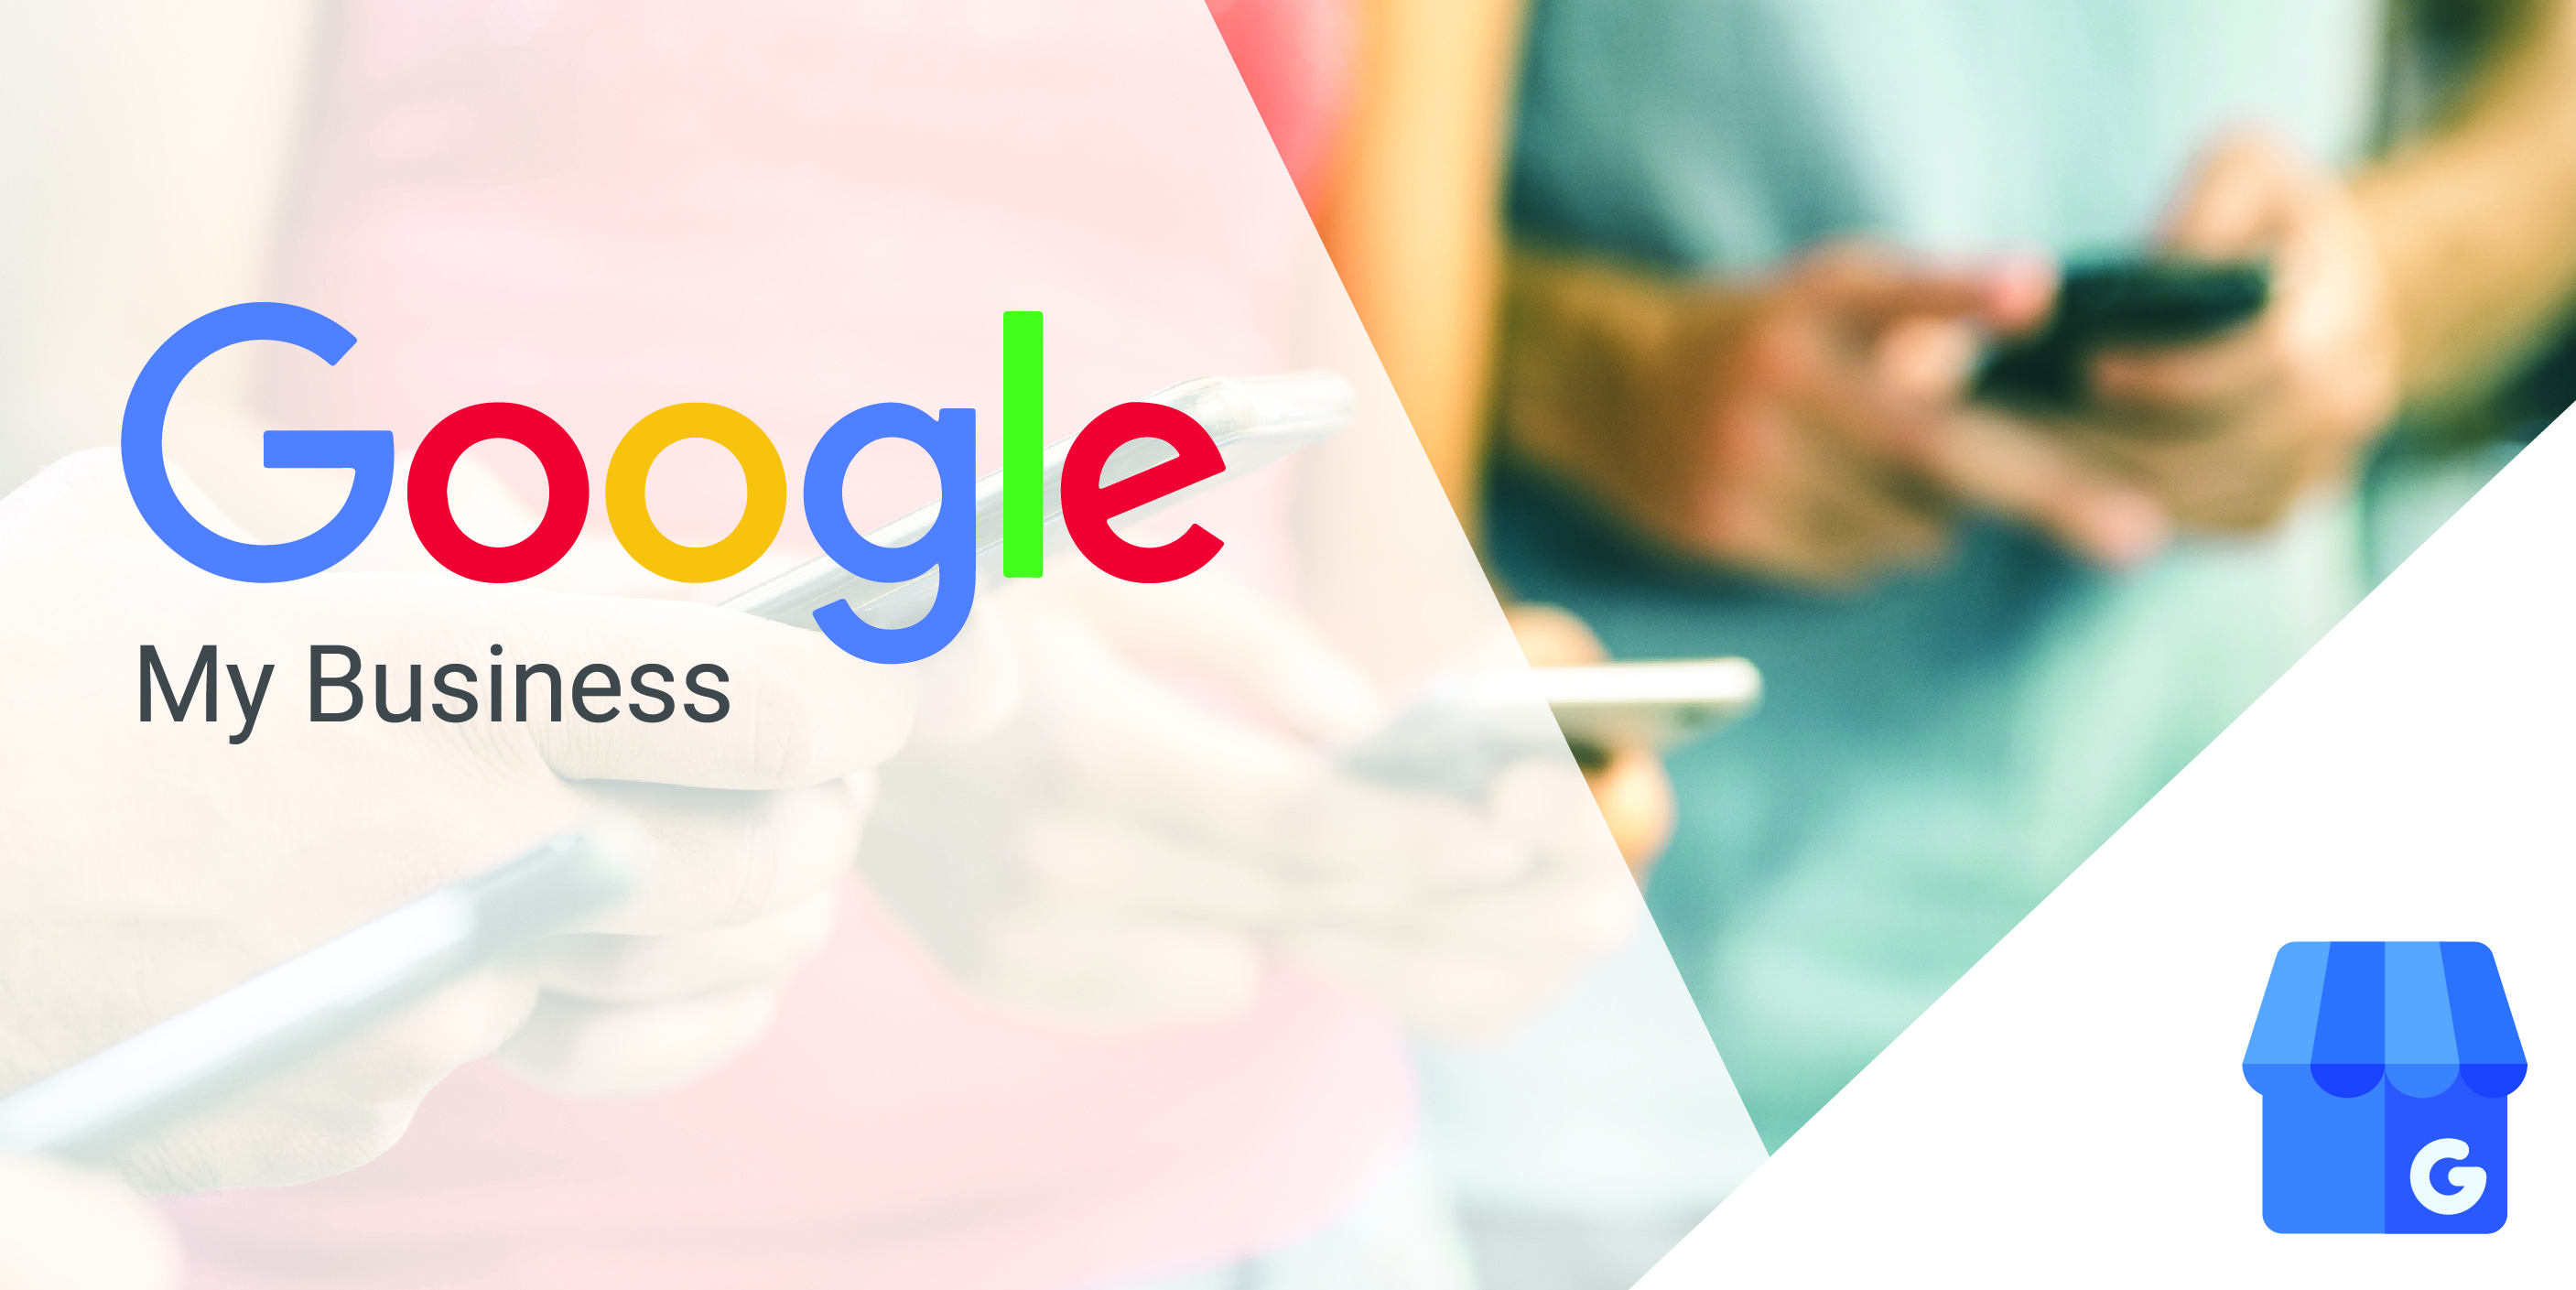 attract mobile users, Attract mobile users with SEO, Google My Business, How to attract mobile users with SEO, Make your site mobile-user friendly, mobile users, mobile users with SEO, Optimize your page speed